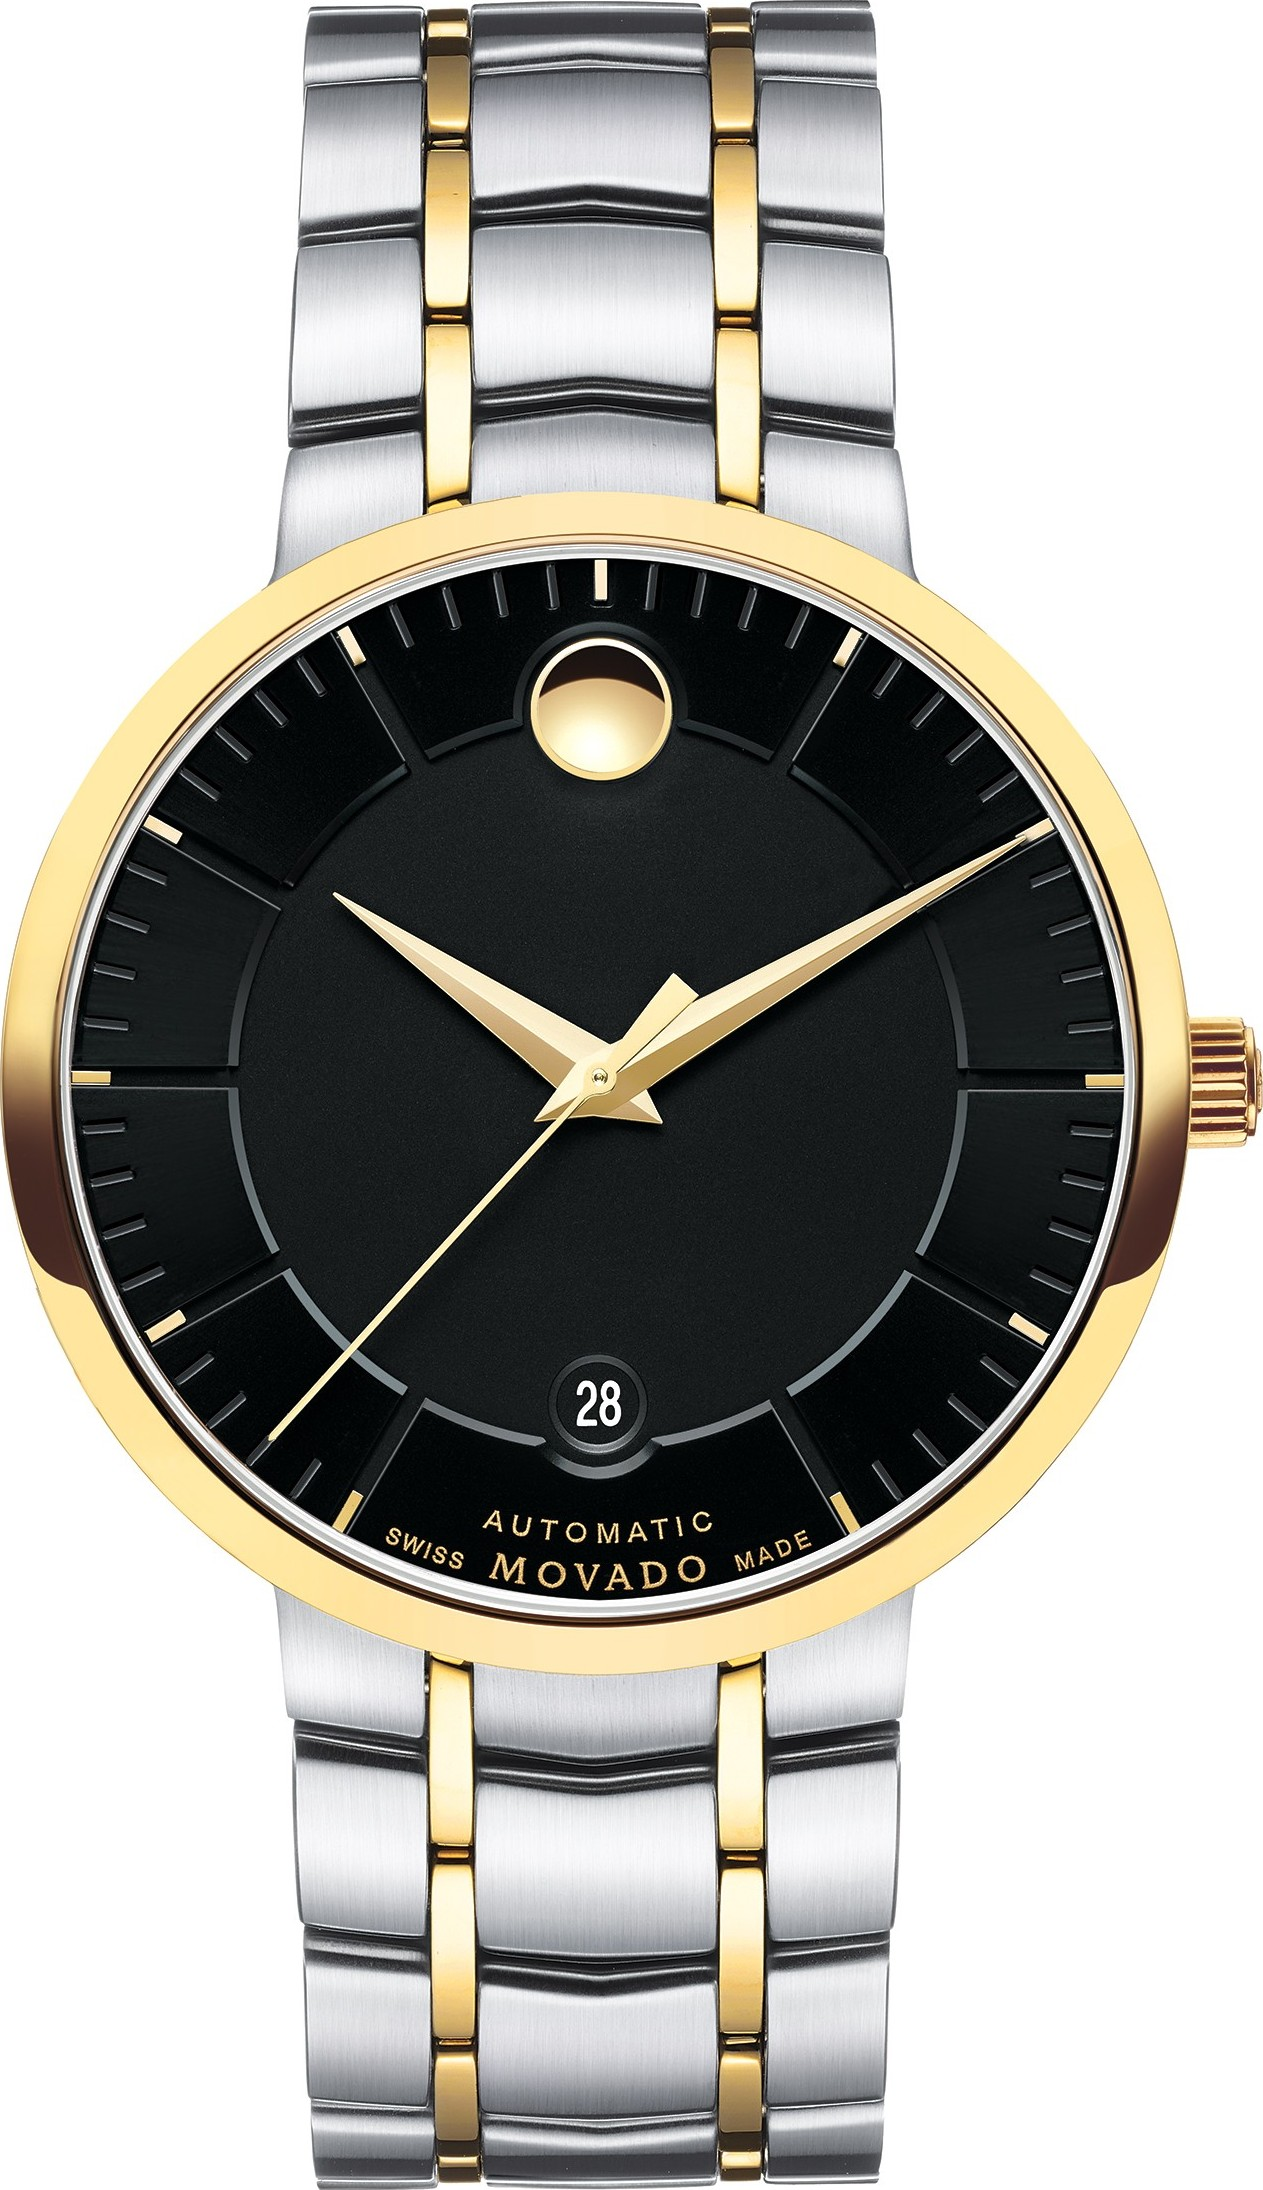 MOVADO 1881 AUTOMATIC Black Watch 39.5mm